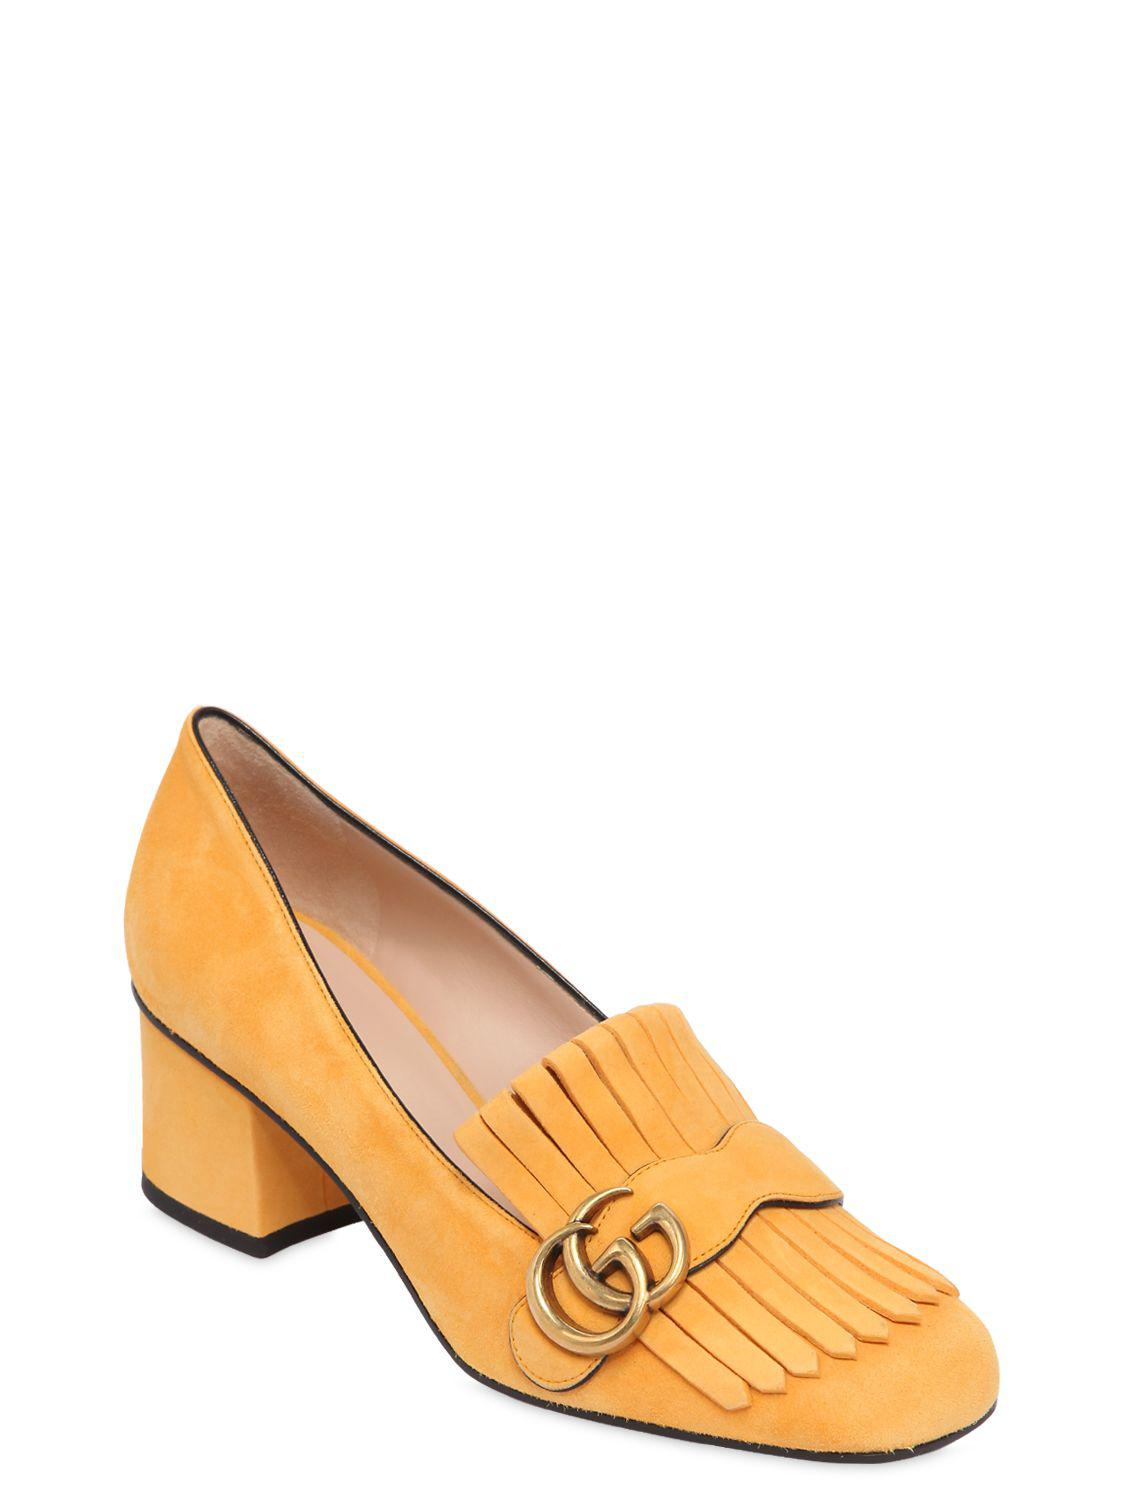 83fb3cdfde9 Lyst - Gucci 55mm Marmont Fringed Suede Pumps in Yellow